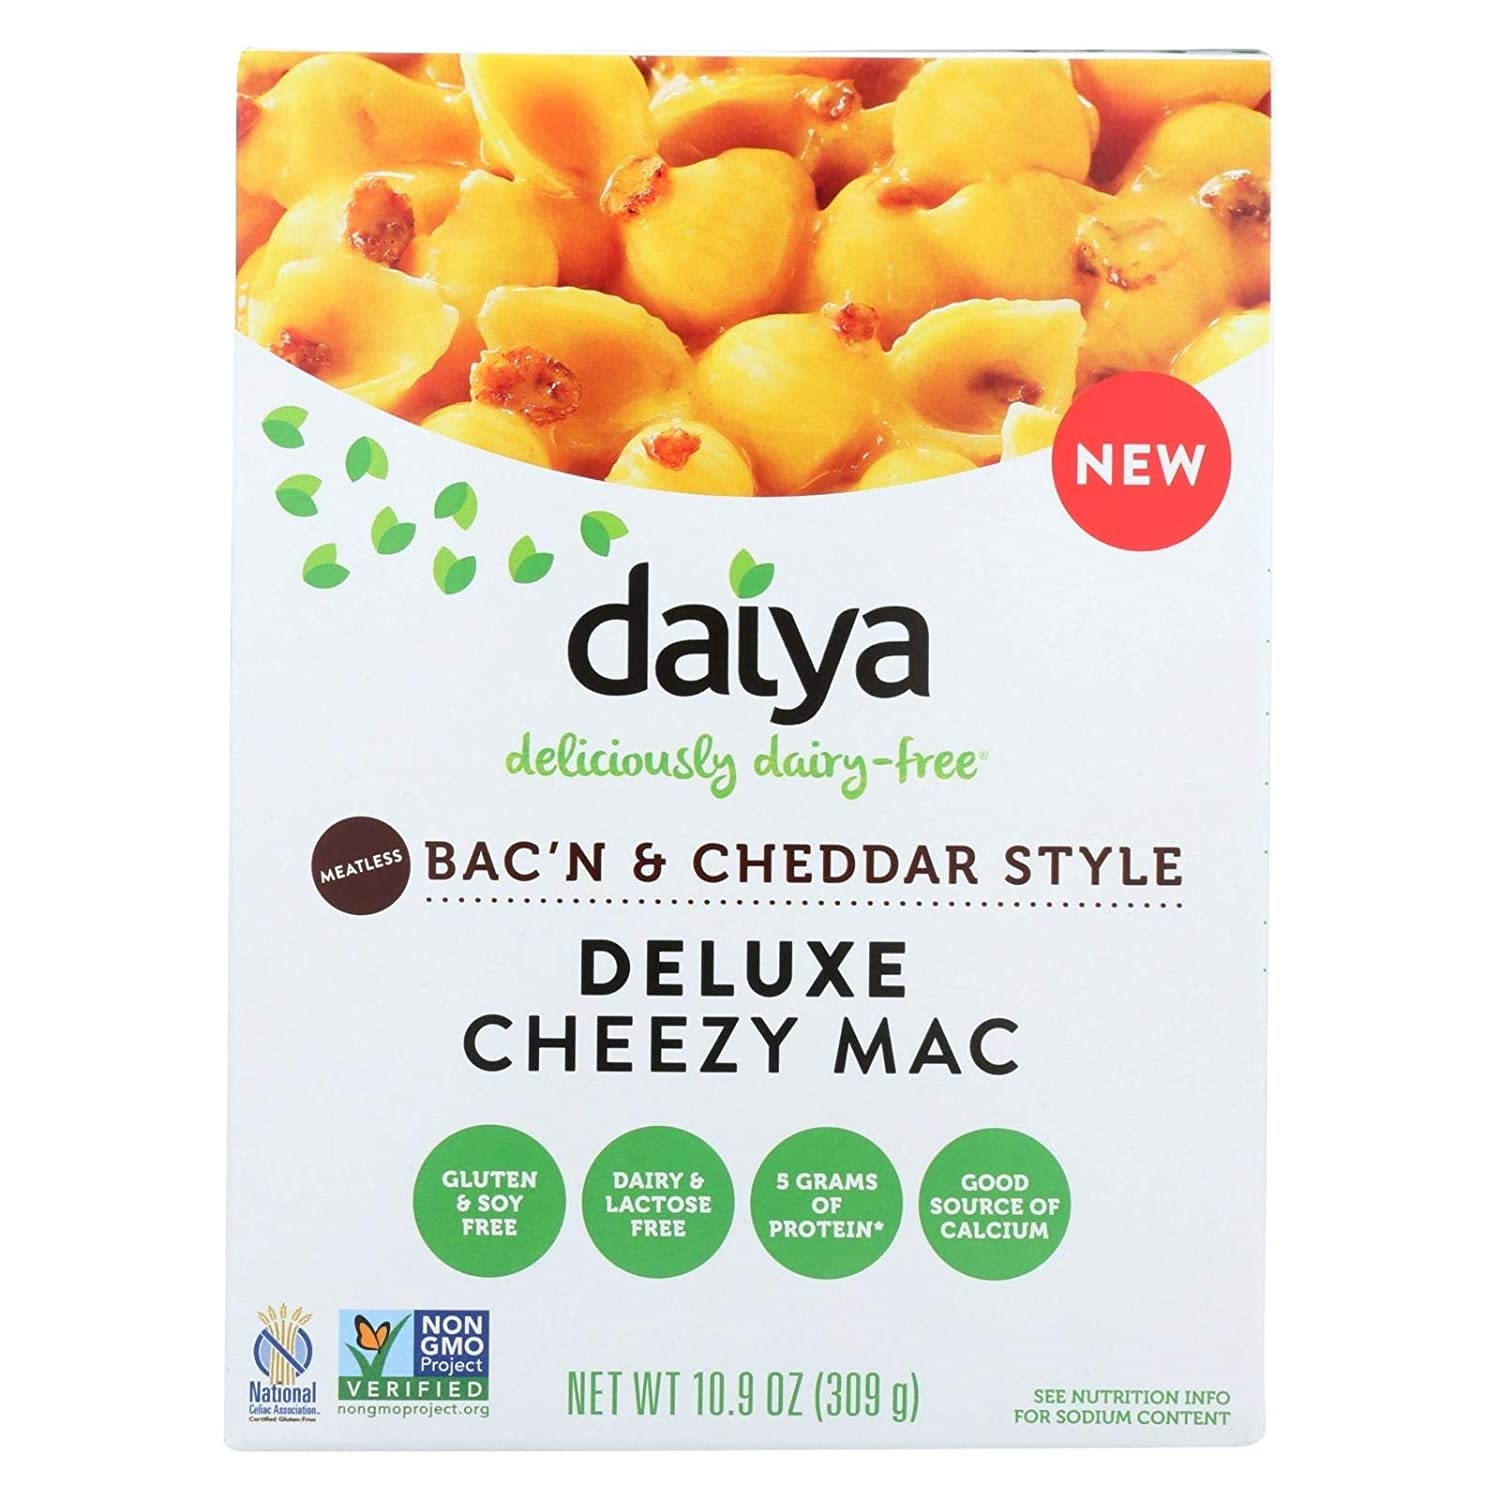 Daiya Cheezy Mac, Meatless Bac'n & Cheddar Style :: Rich & Creamy Plant-Based Mac & Cheese :: Deliciously Dairy Free, Vegan, Gluten Free, Soy Free :: With Gluten Free Noodles, 10.9 Oz. Box (2 Pack)